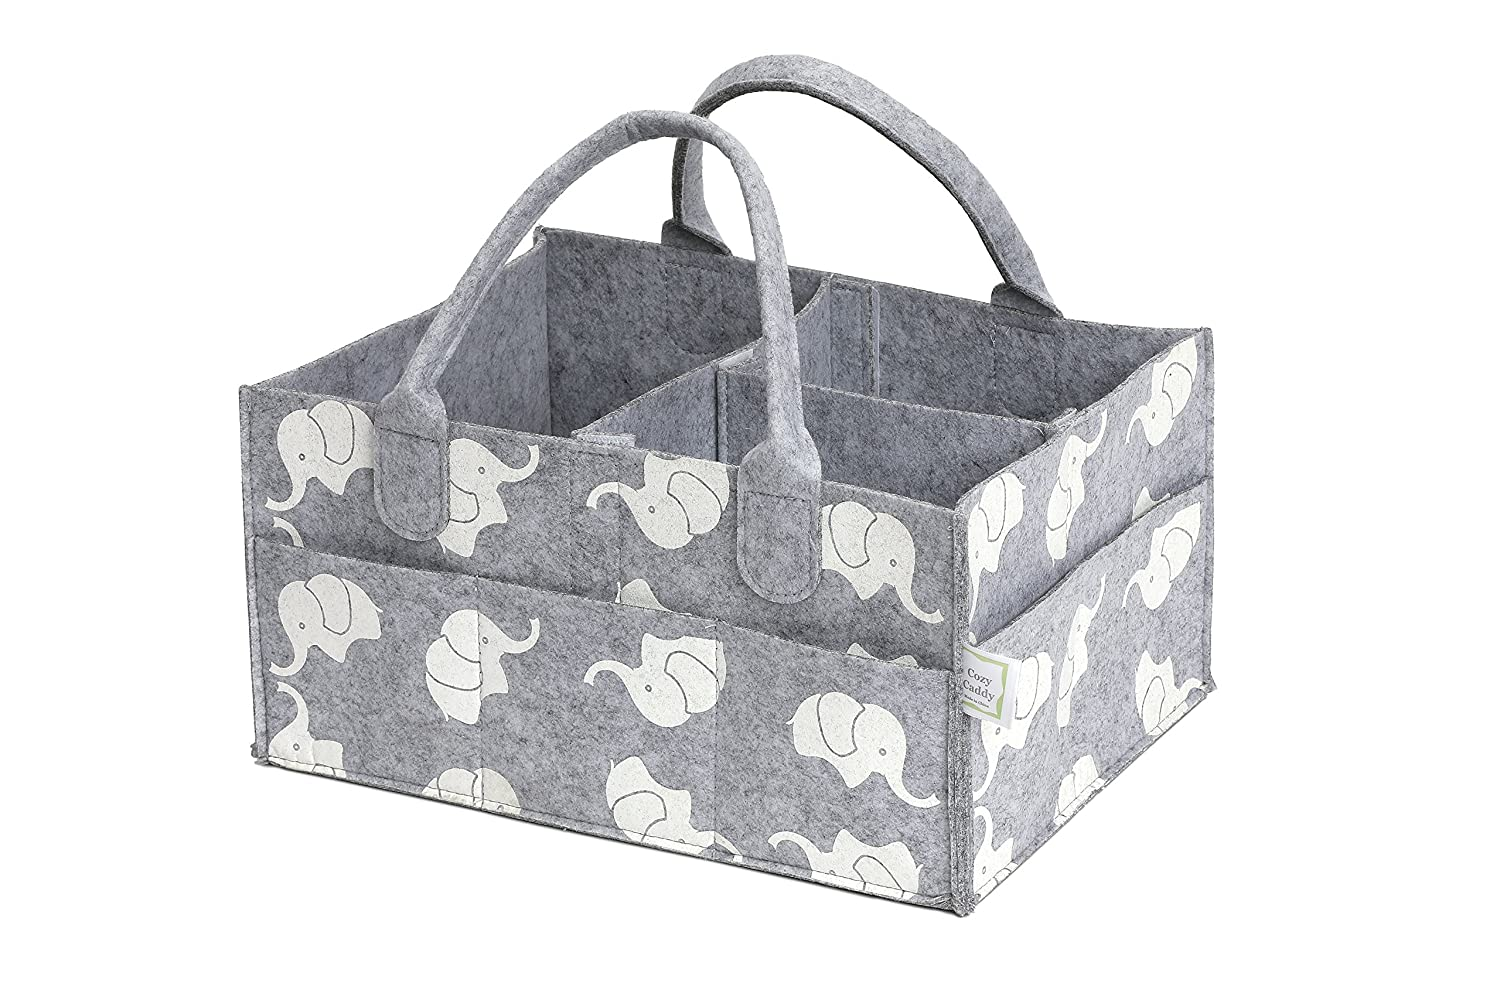 c12337e843c4 Amazon.com   CozyCaddy Grey Diaper Caddy